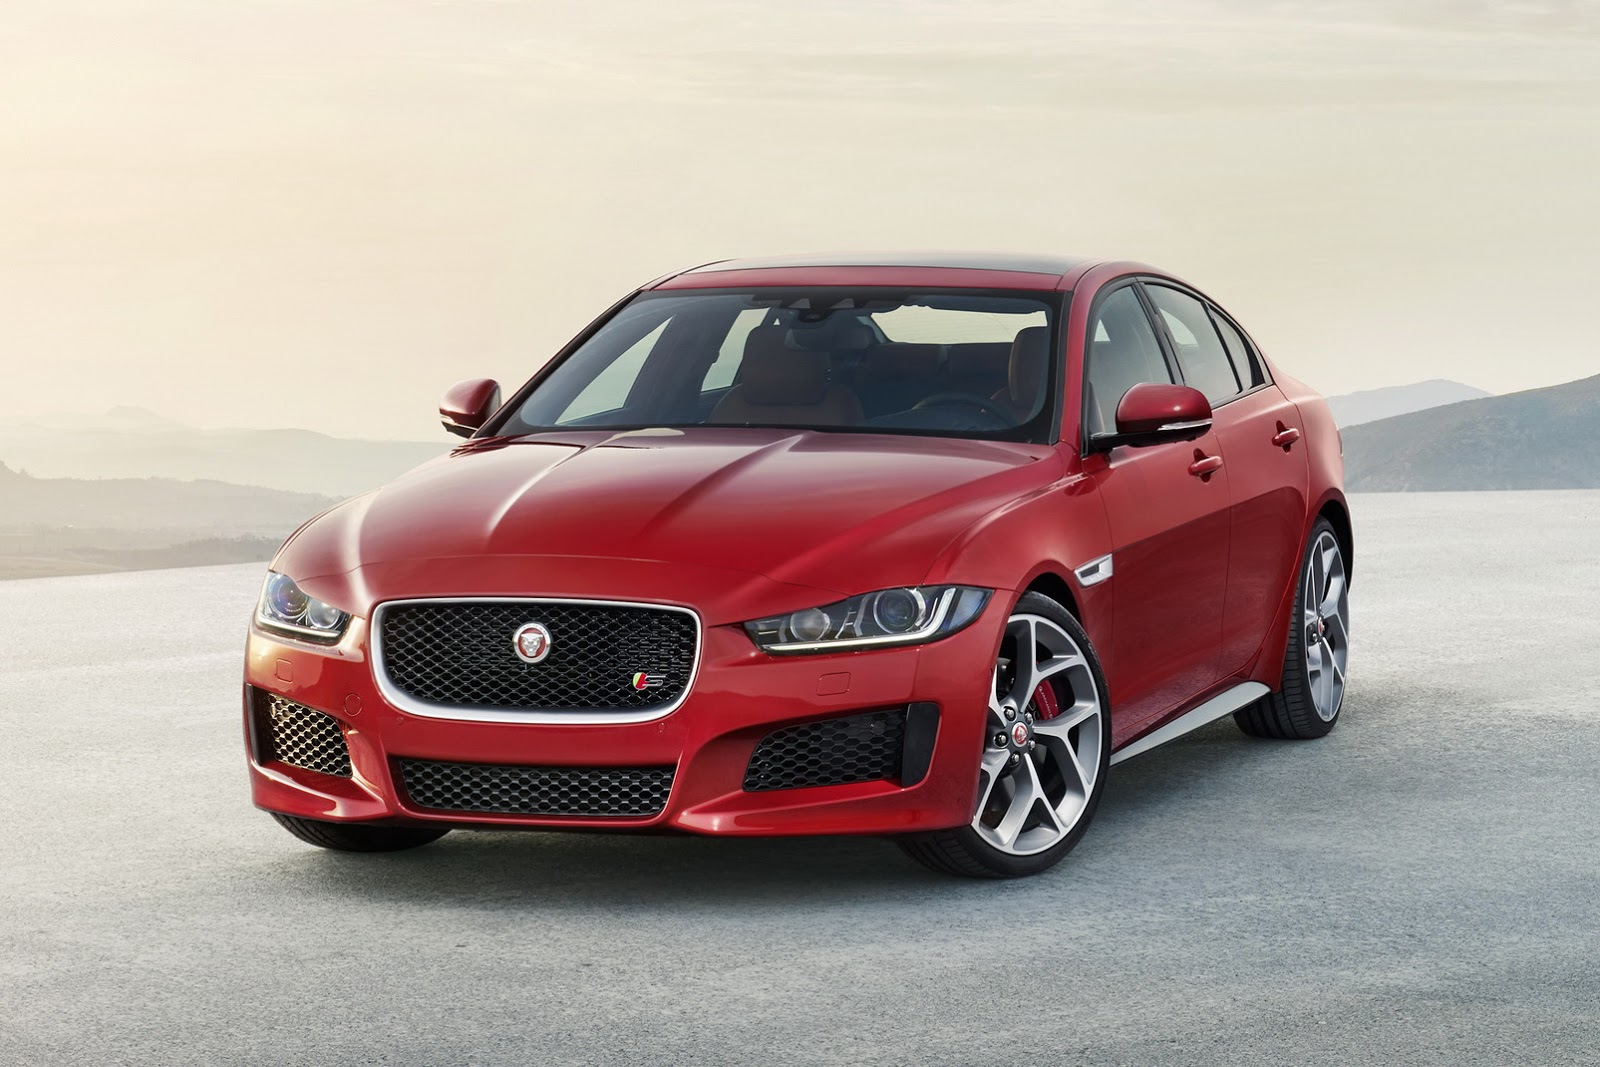 new 2016 jaguar xe sports saloon 52 hd photos and full details updated. Black Bedroom Furniture Sets. Home Design Ideas